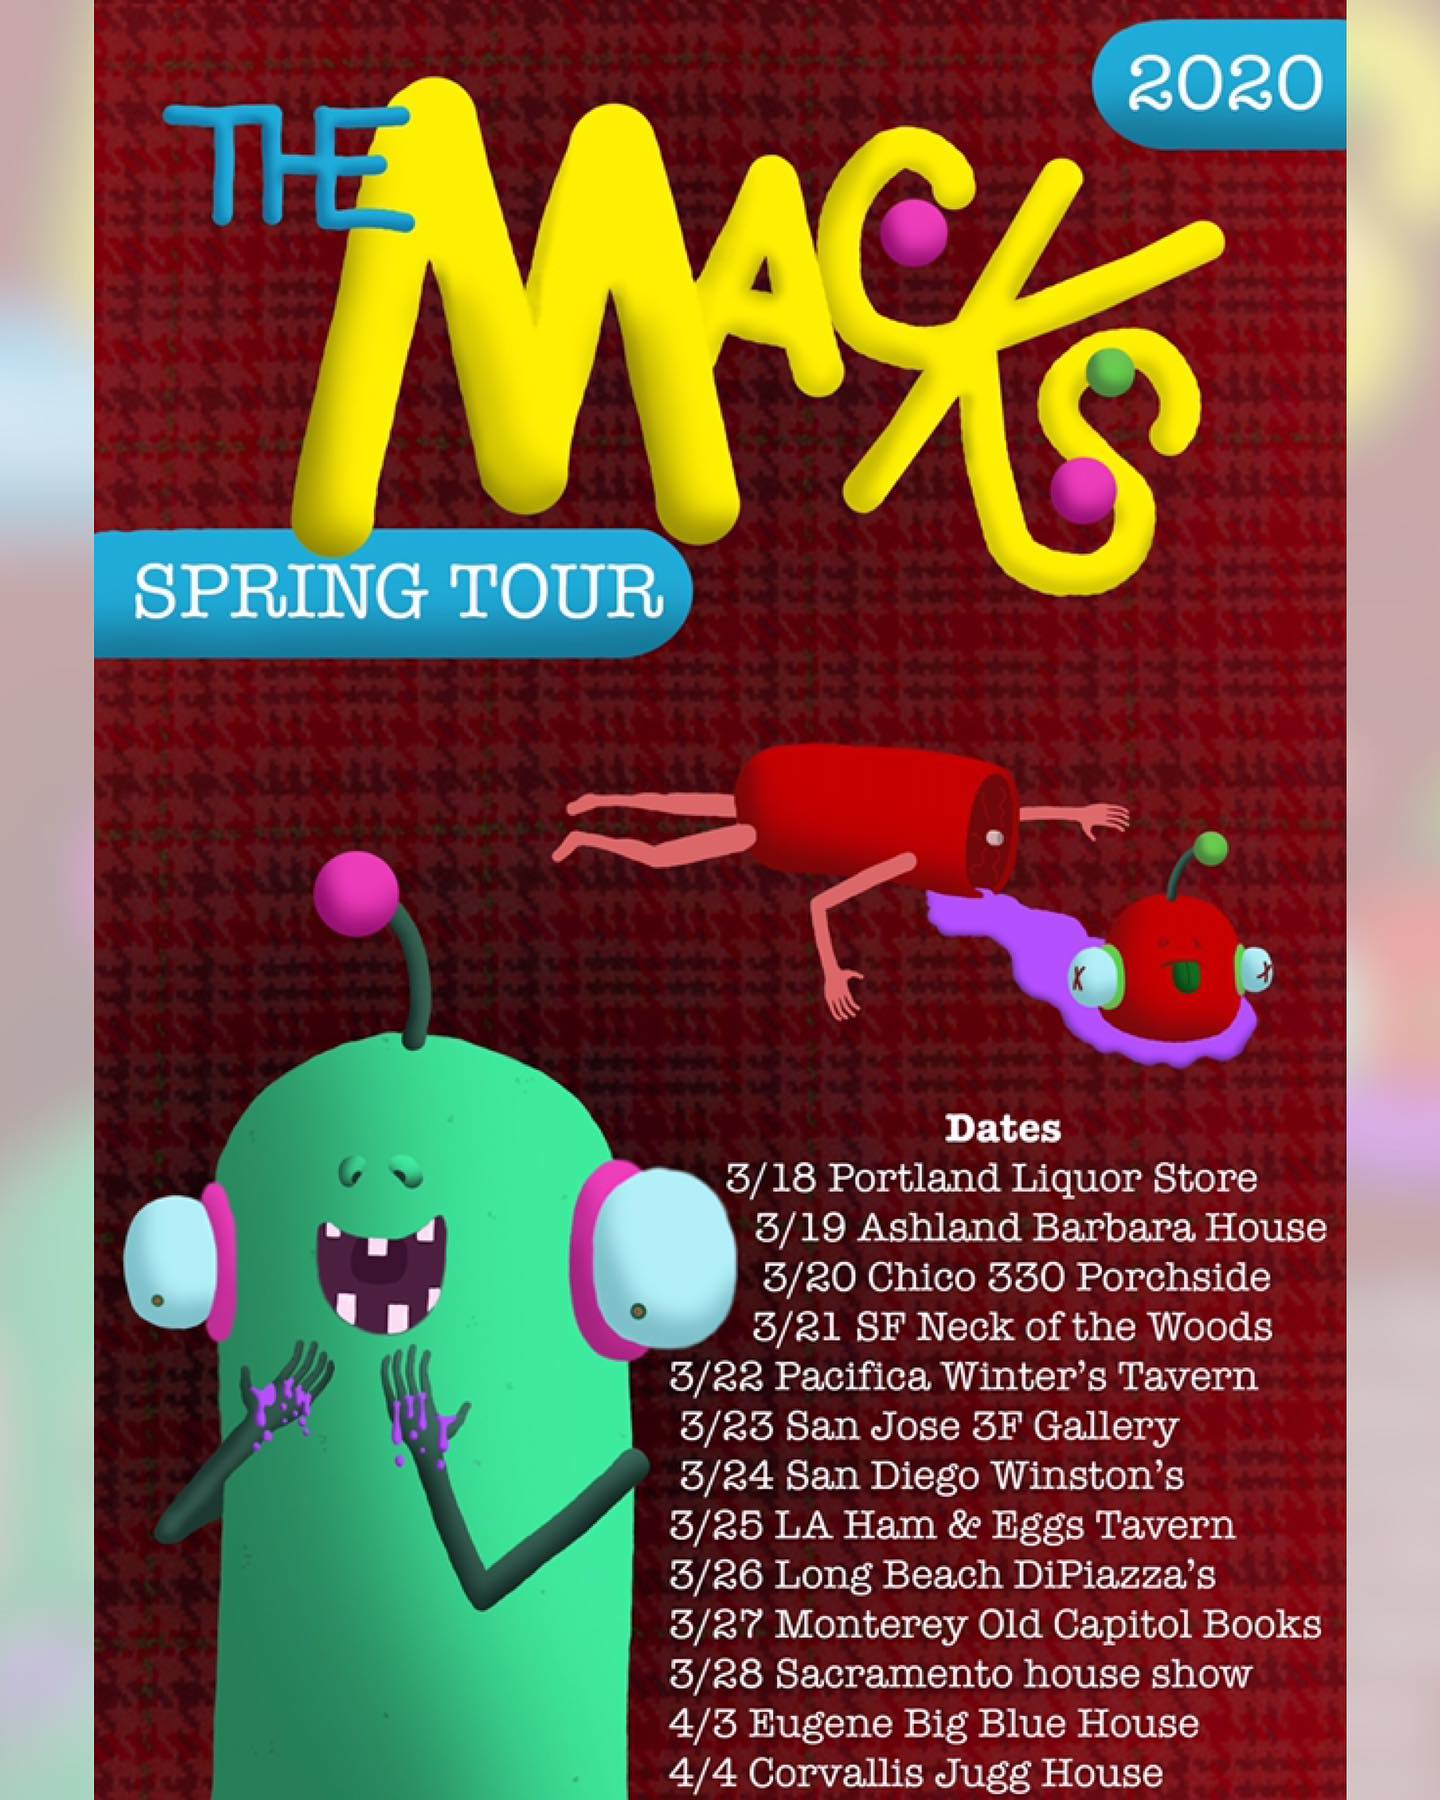 The Macks Spring Tour dates